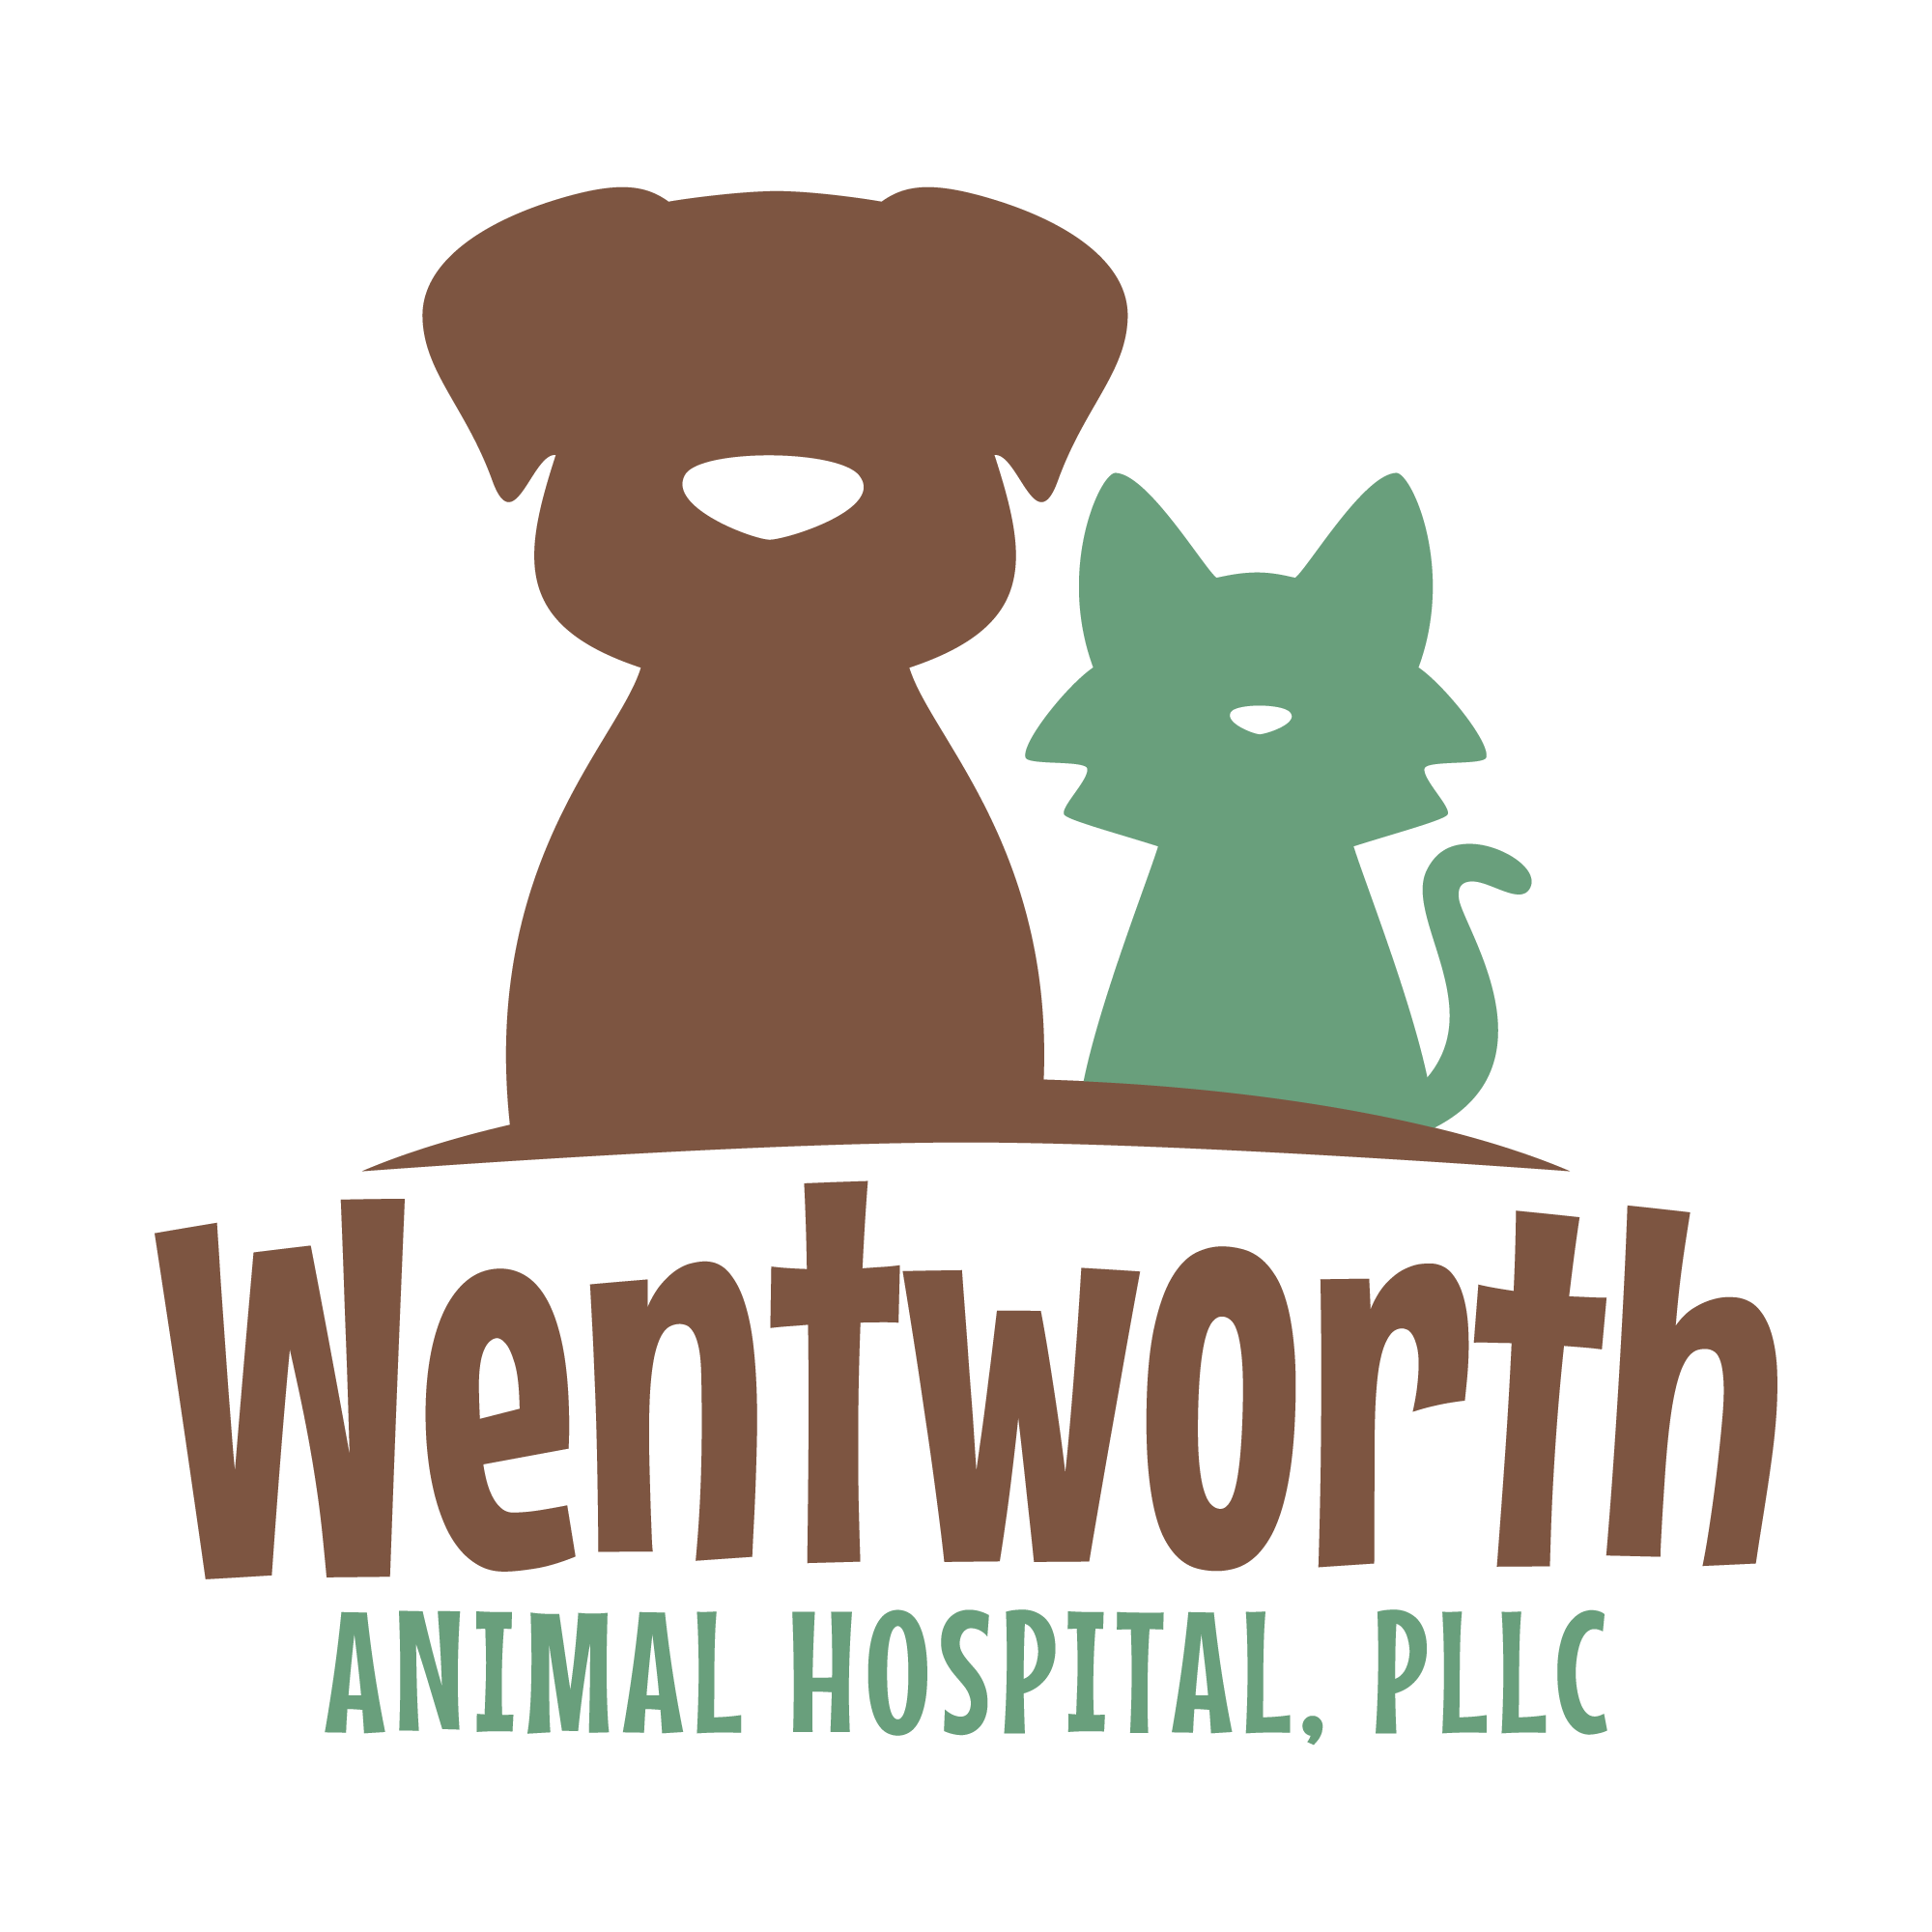 Wentworth Animal Hospital